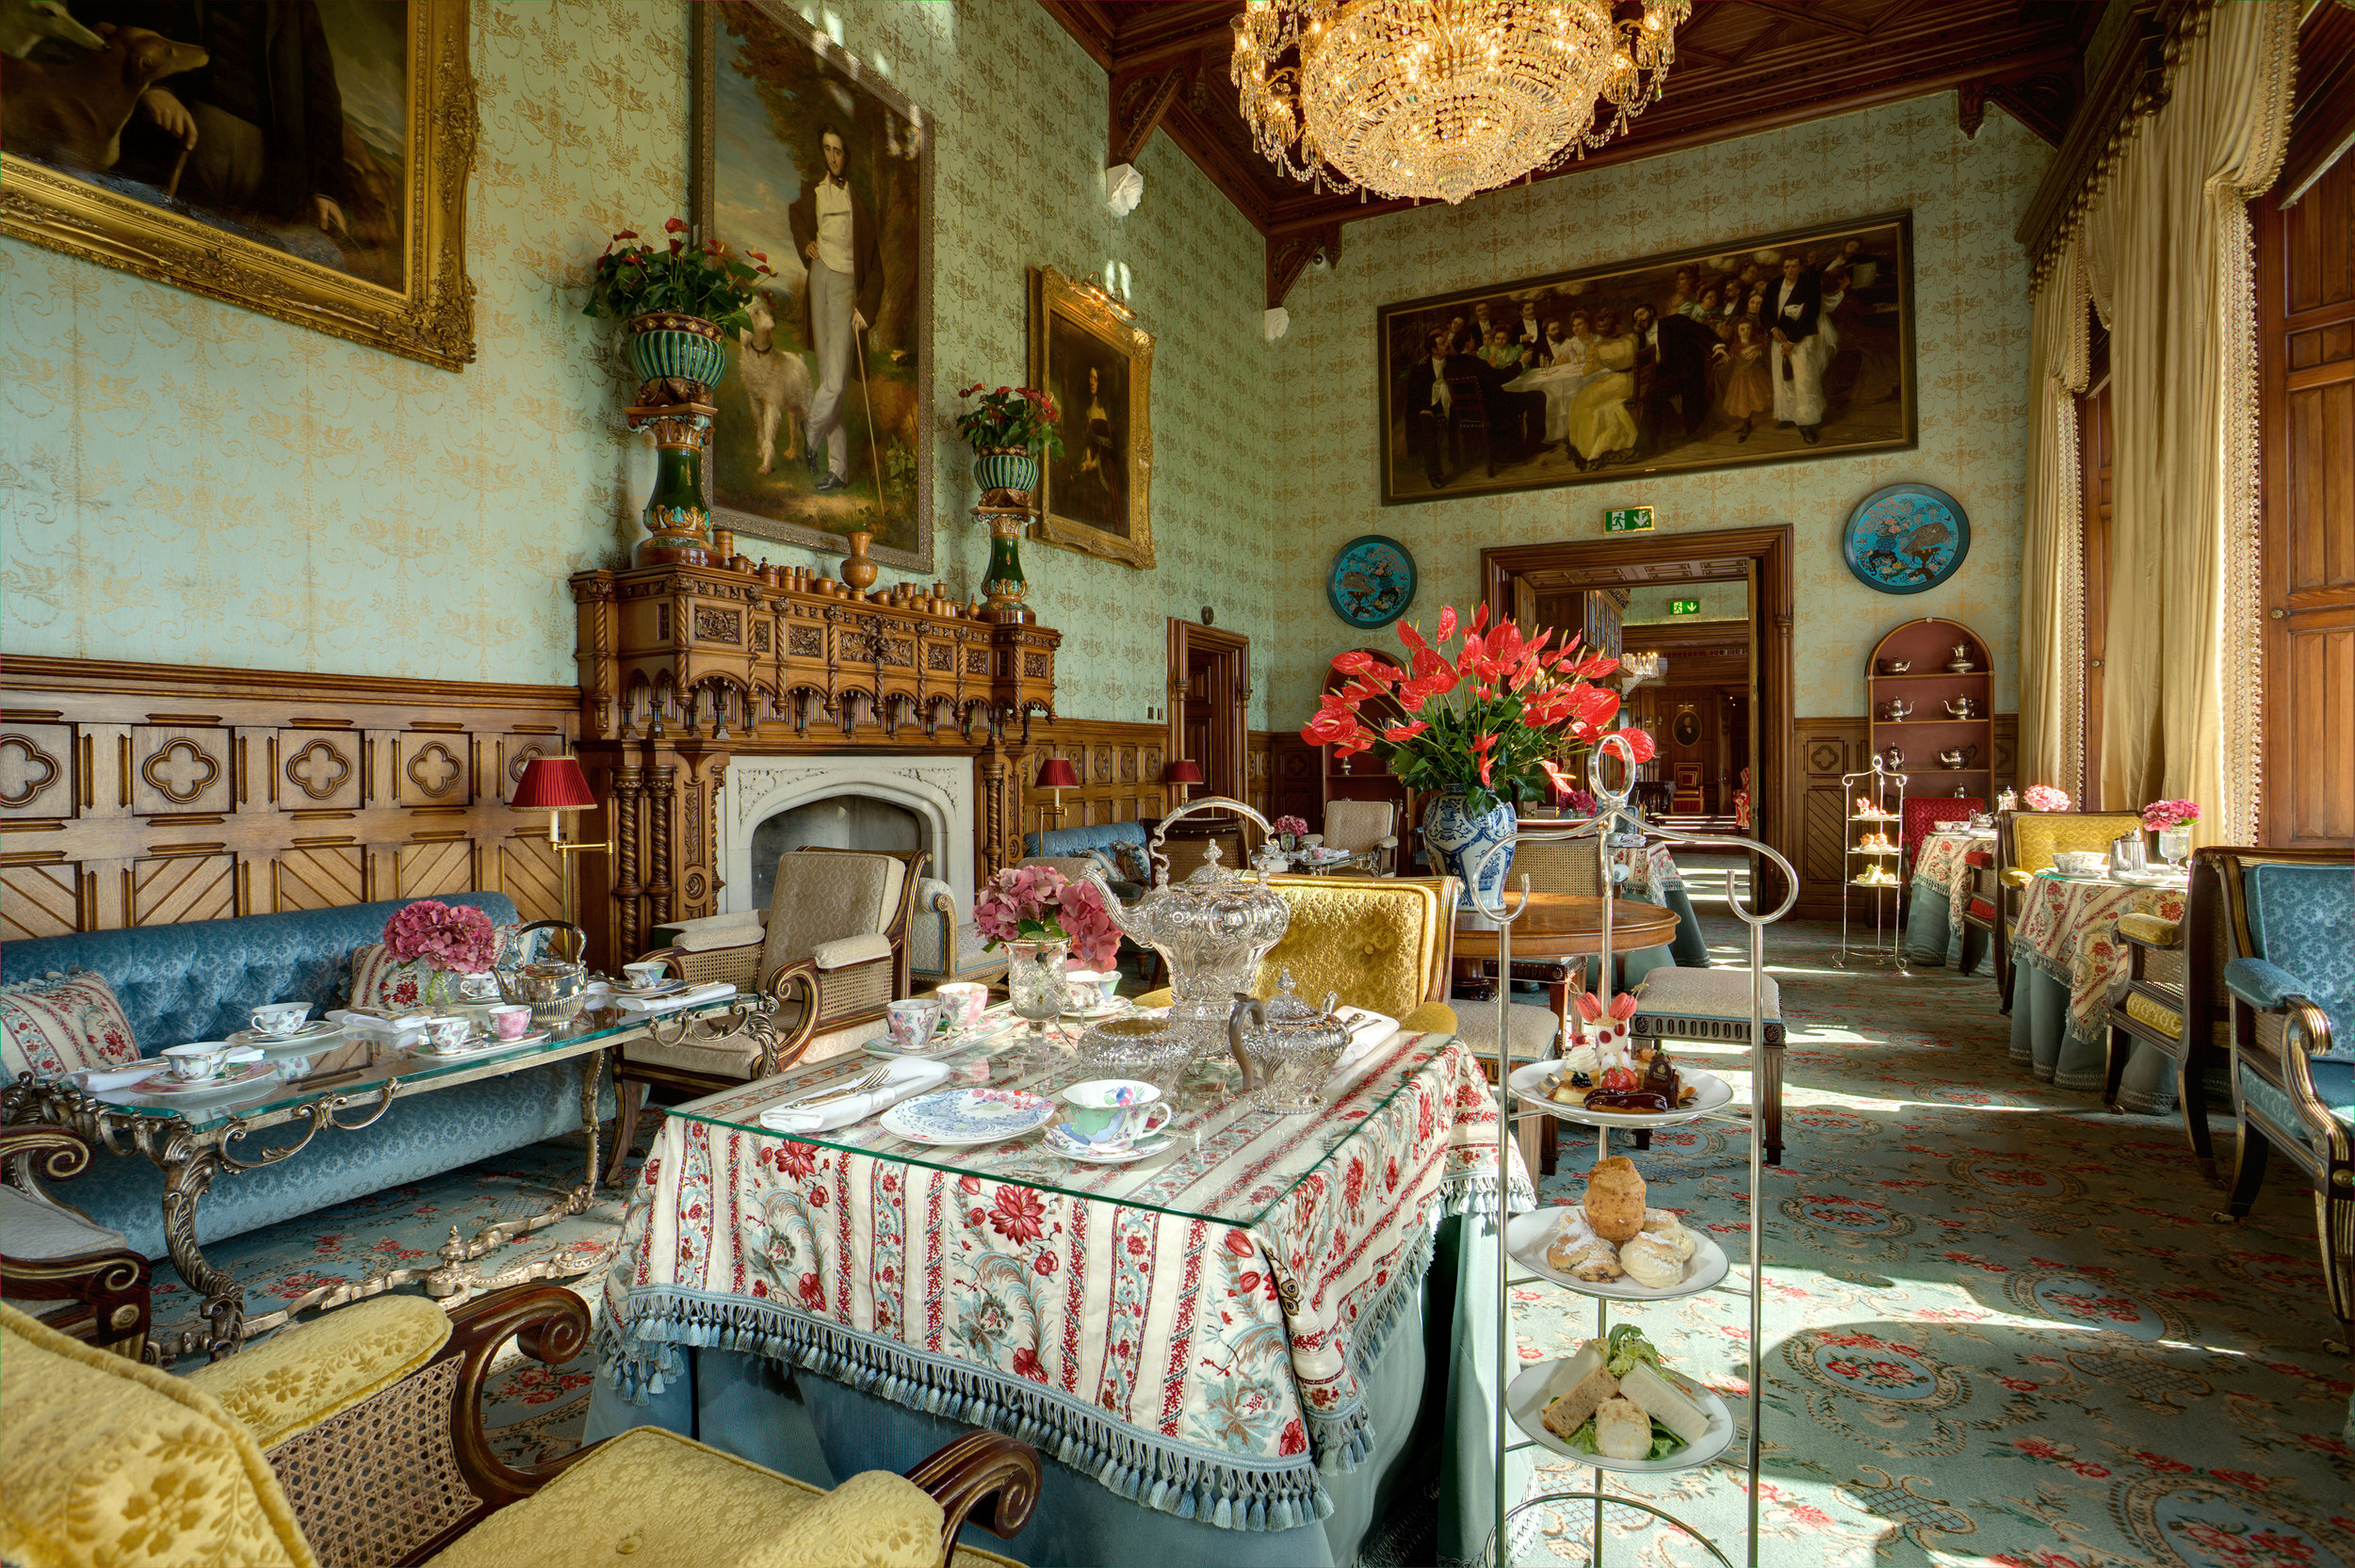 Afternoon Tea in the Connaught Room - Image Courtesy Ashford Castle